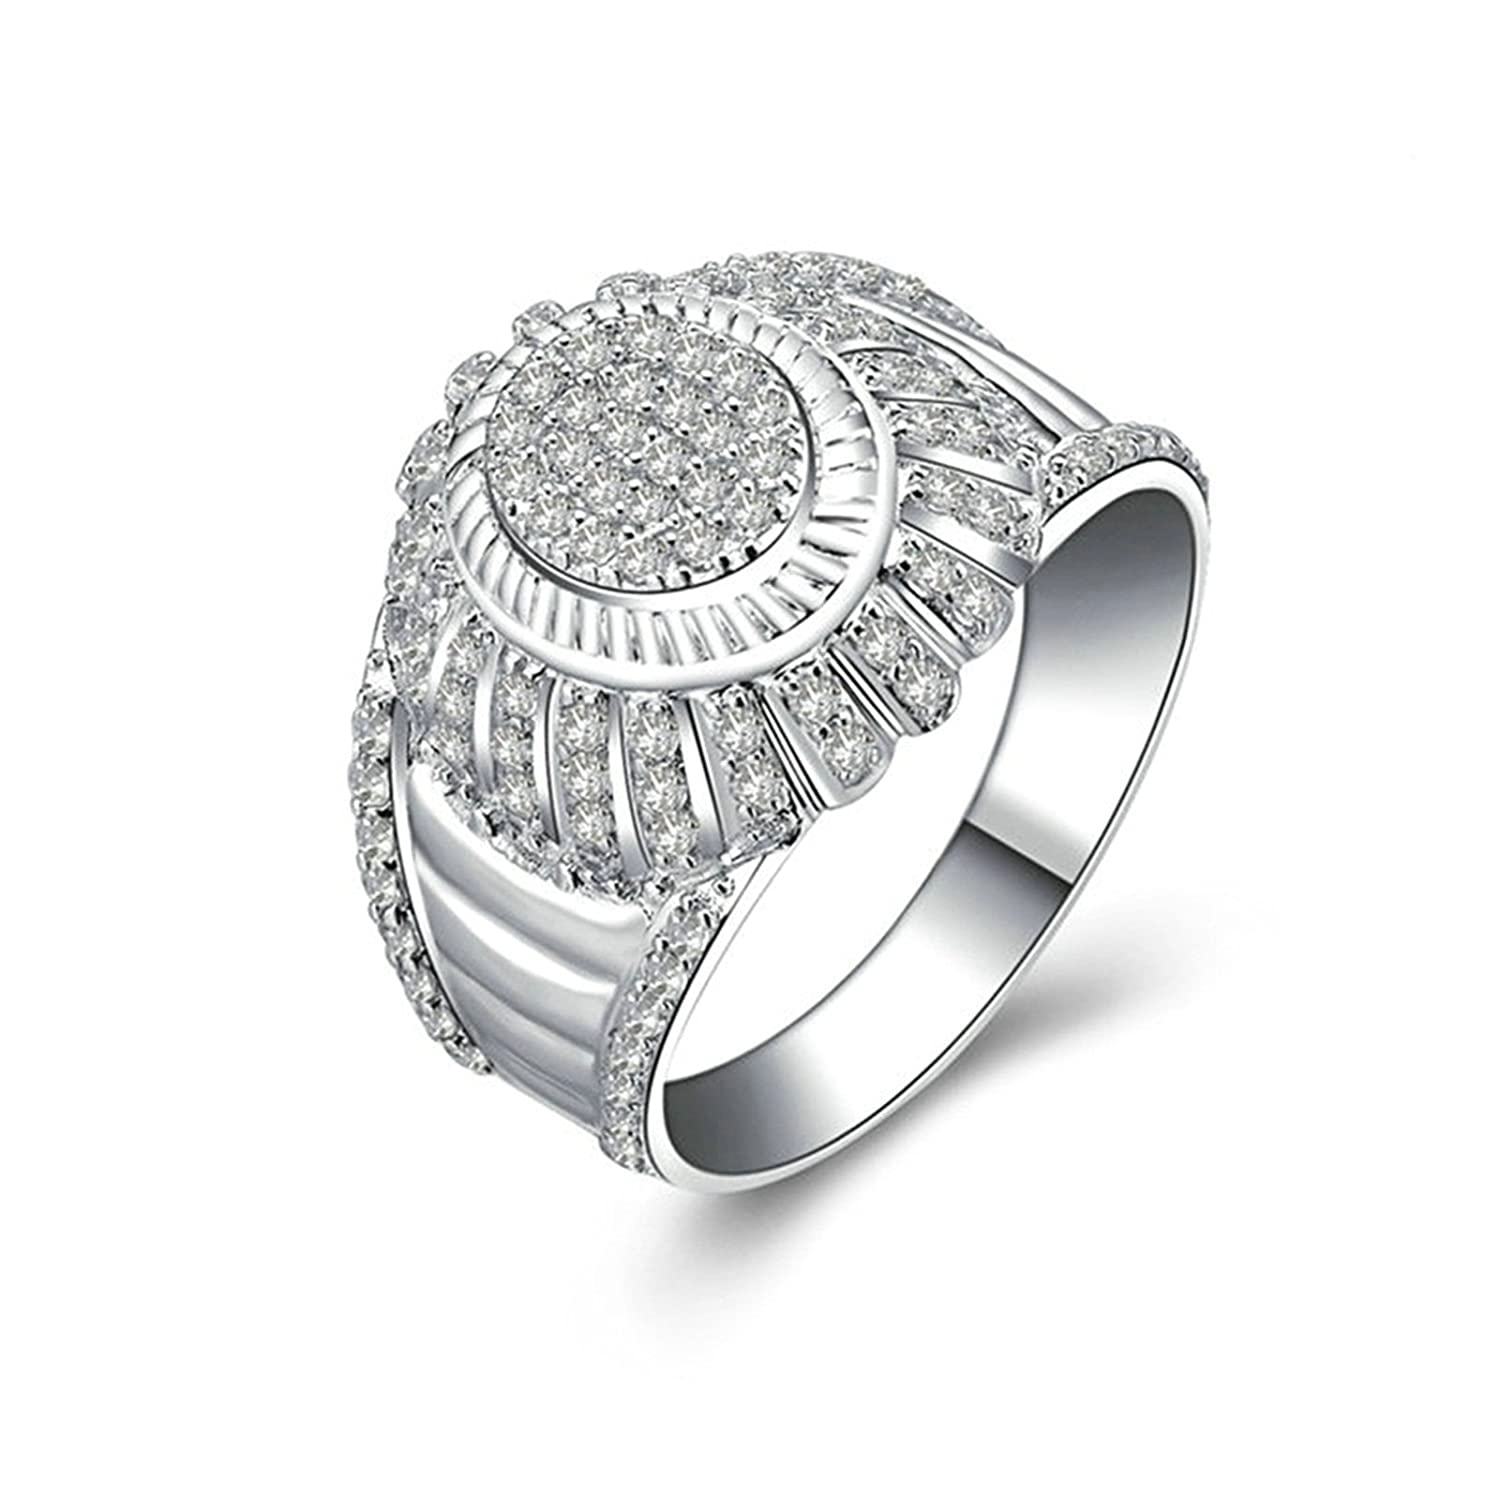 Bishilin Ring for Wedding for Him Iced Out Ring Round White Cubic Zirconia Size 11.5